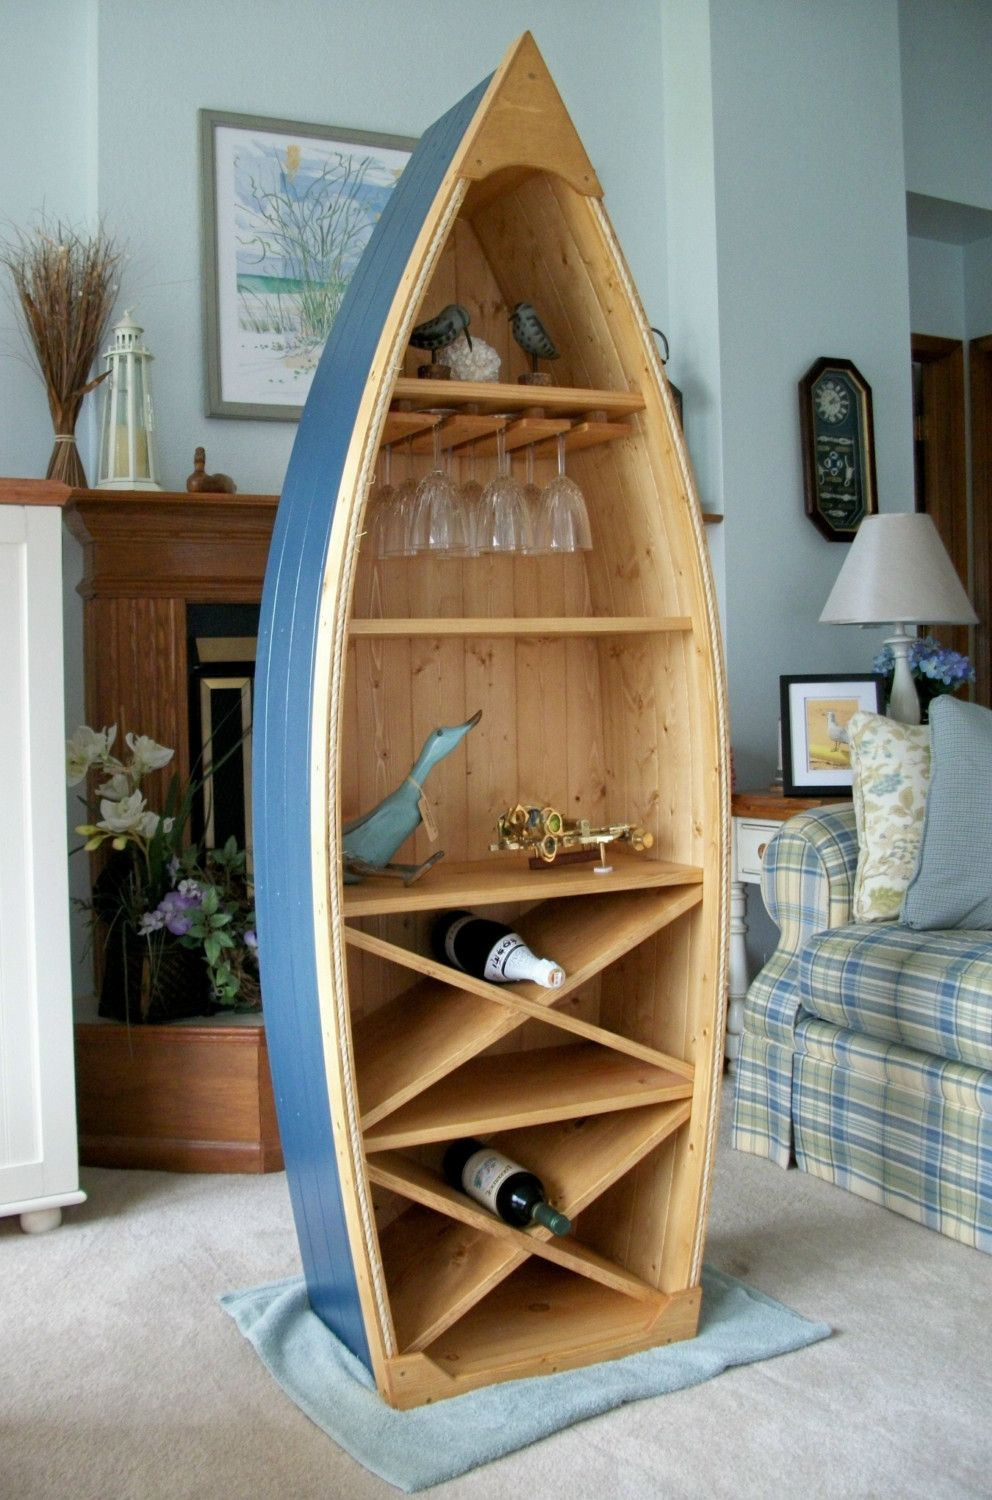 6 Ft Boat Wine Rack Glass Holder Bookcase Shelf Canoe Hand Crafted Knotty Pine Bookshelf Nautical Furniture 43000 Via Etsy